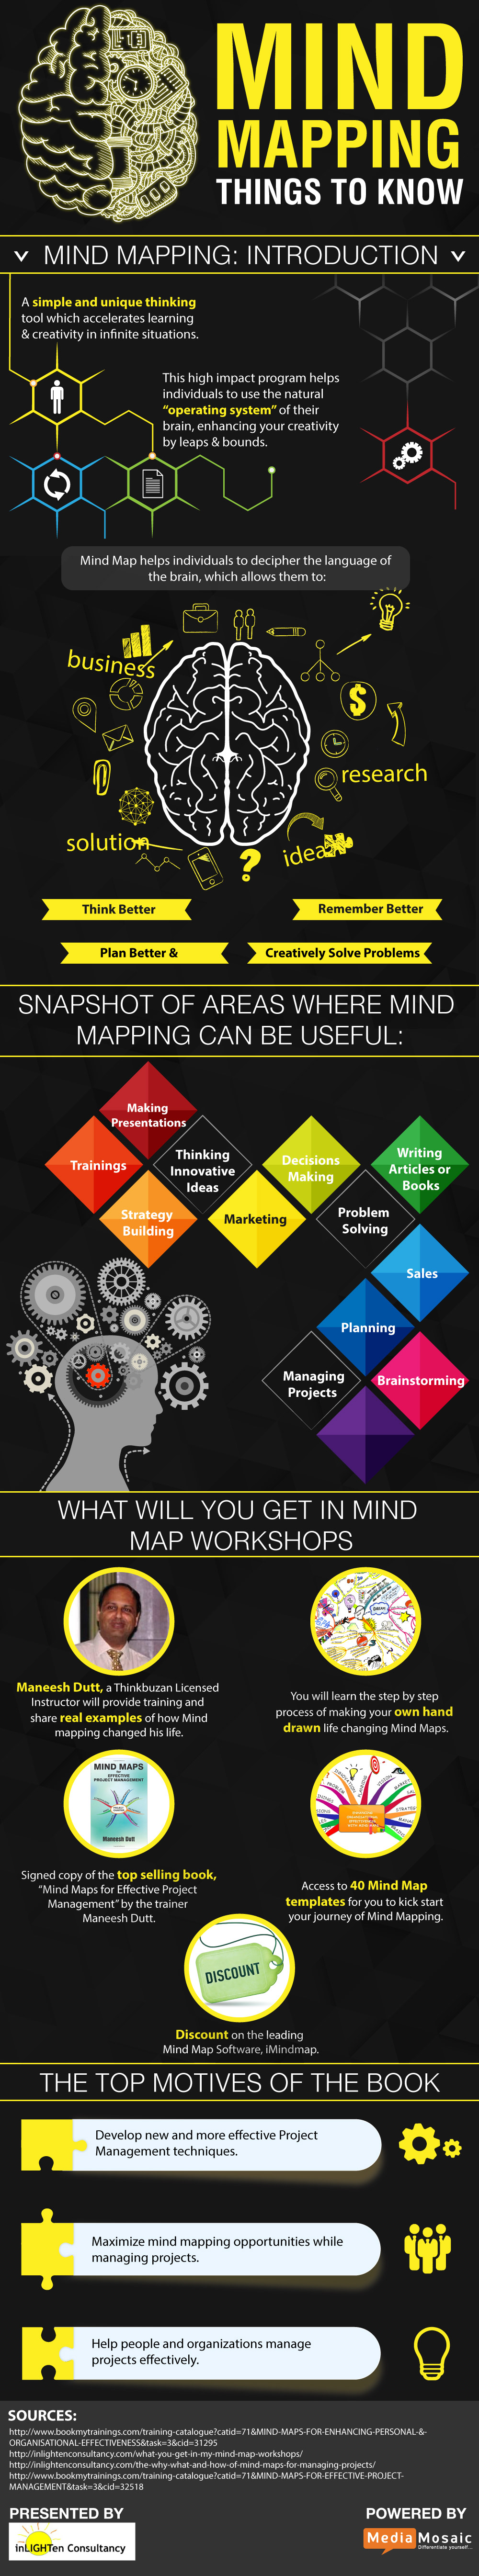 Info-graphic: Things to know about Mind Mapping